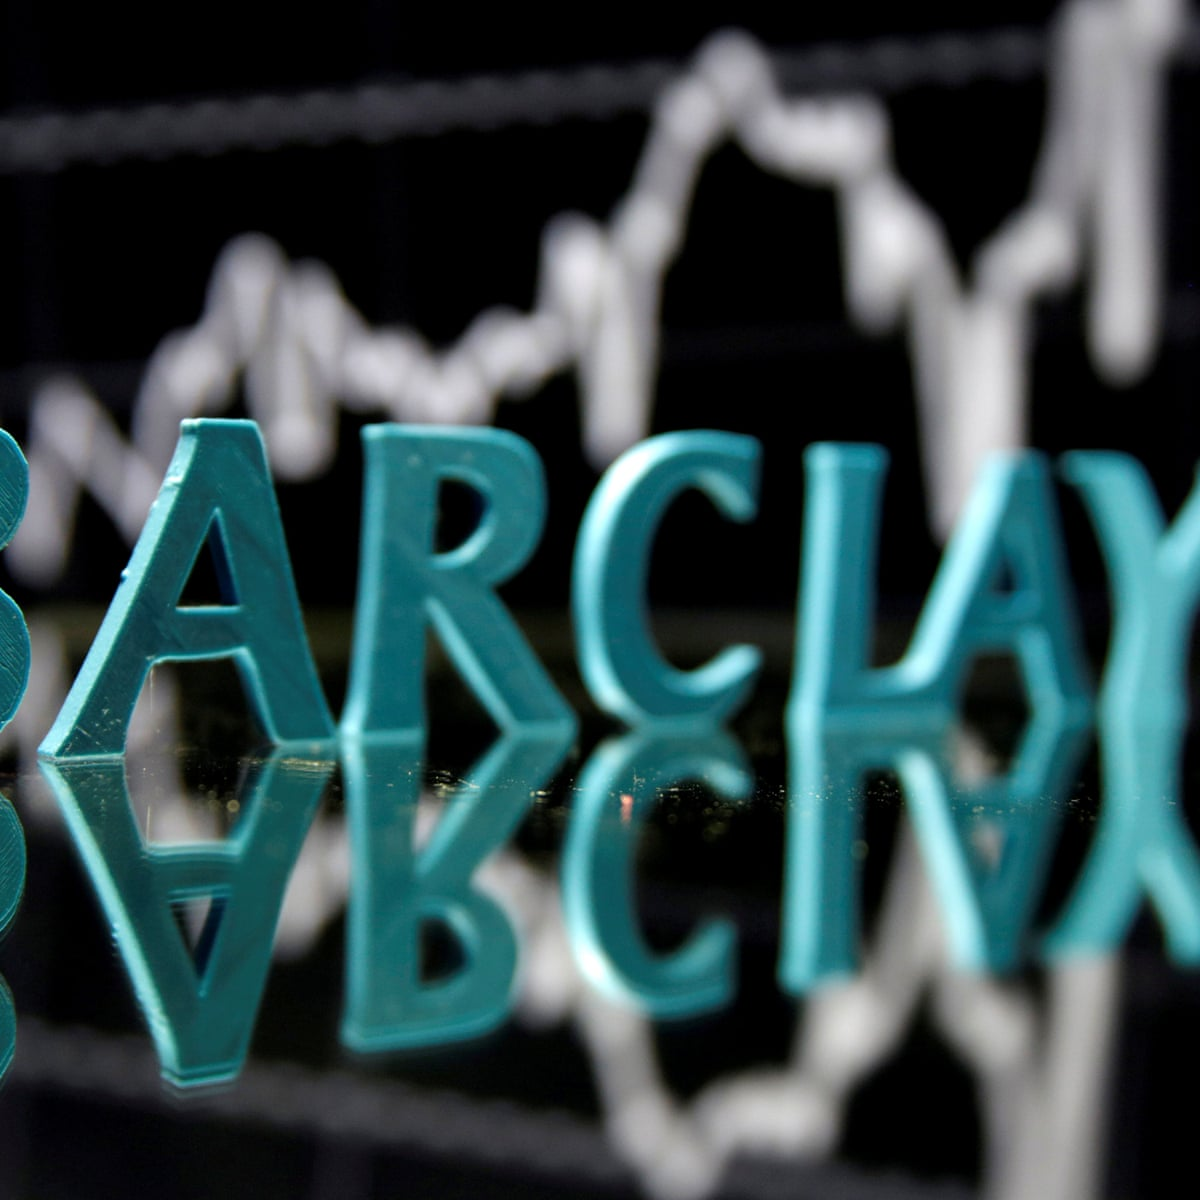 Barclays Agrees To Pay 2bn To Settle Us Fraud Case Barclays The Guardian